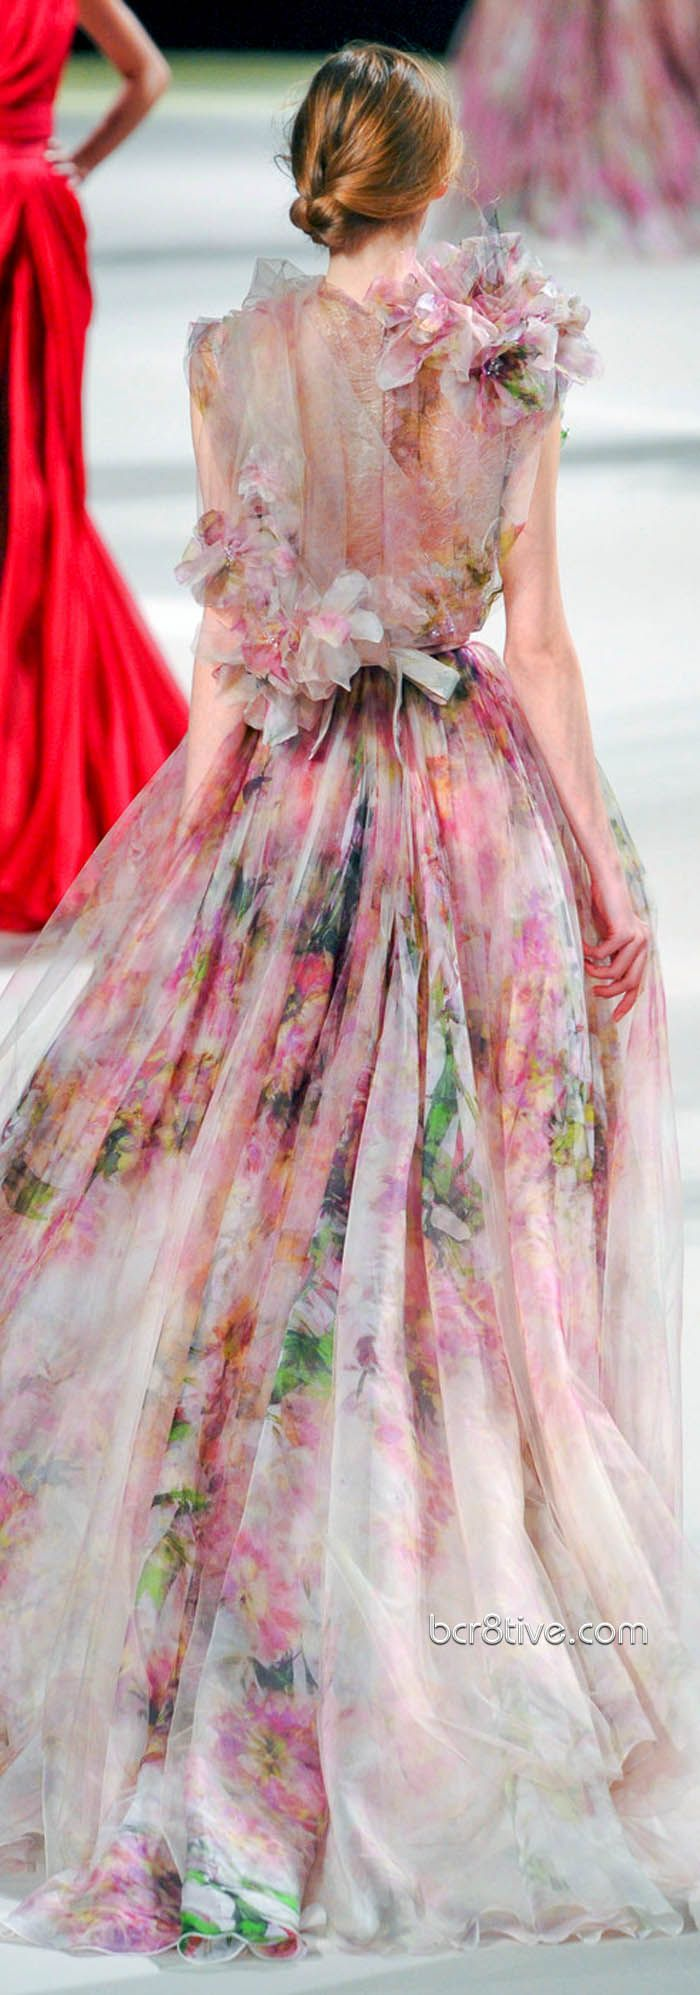 Elie Saab Haute Couture Spring Summer 2011 Collection